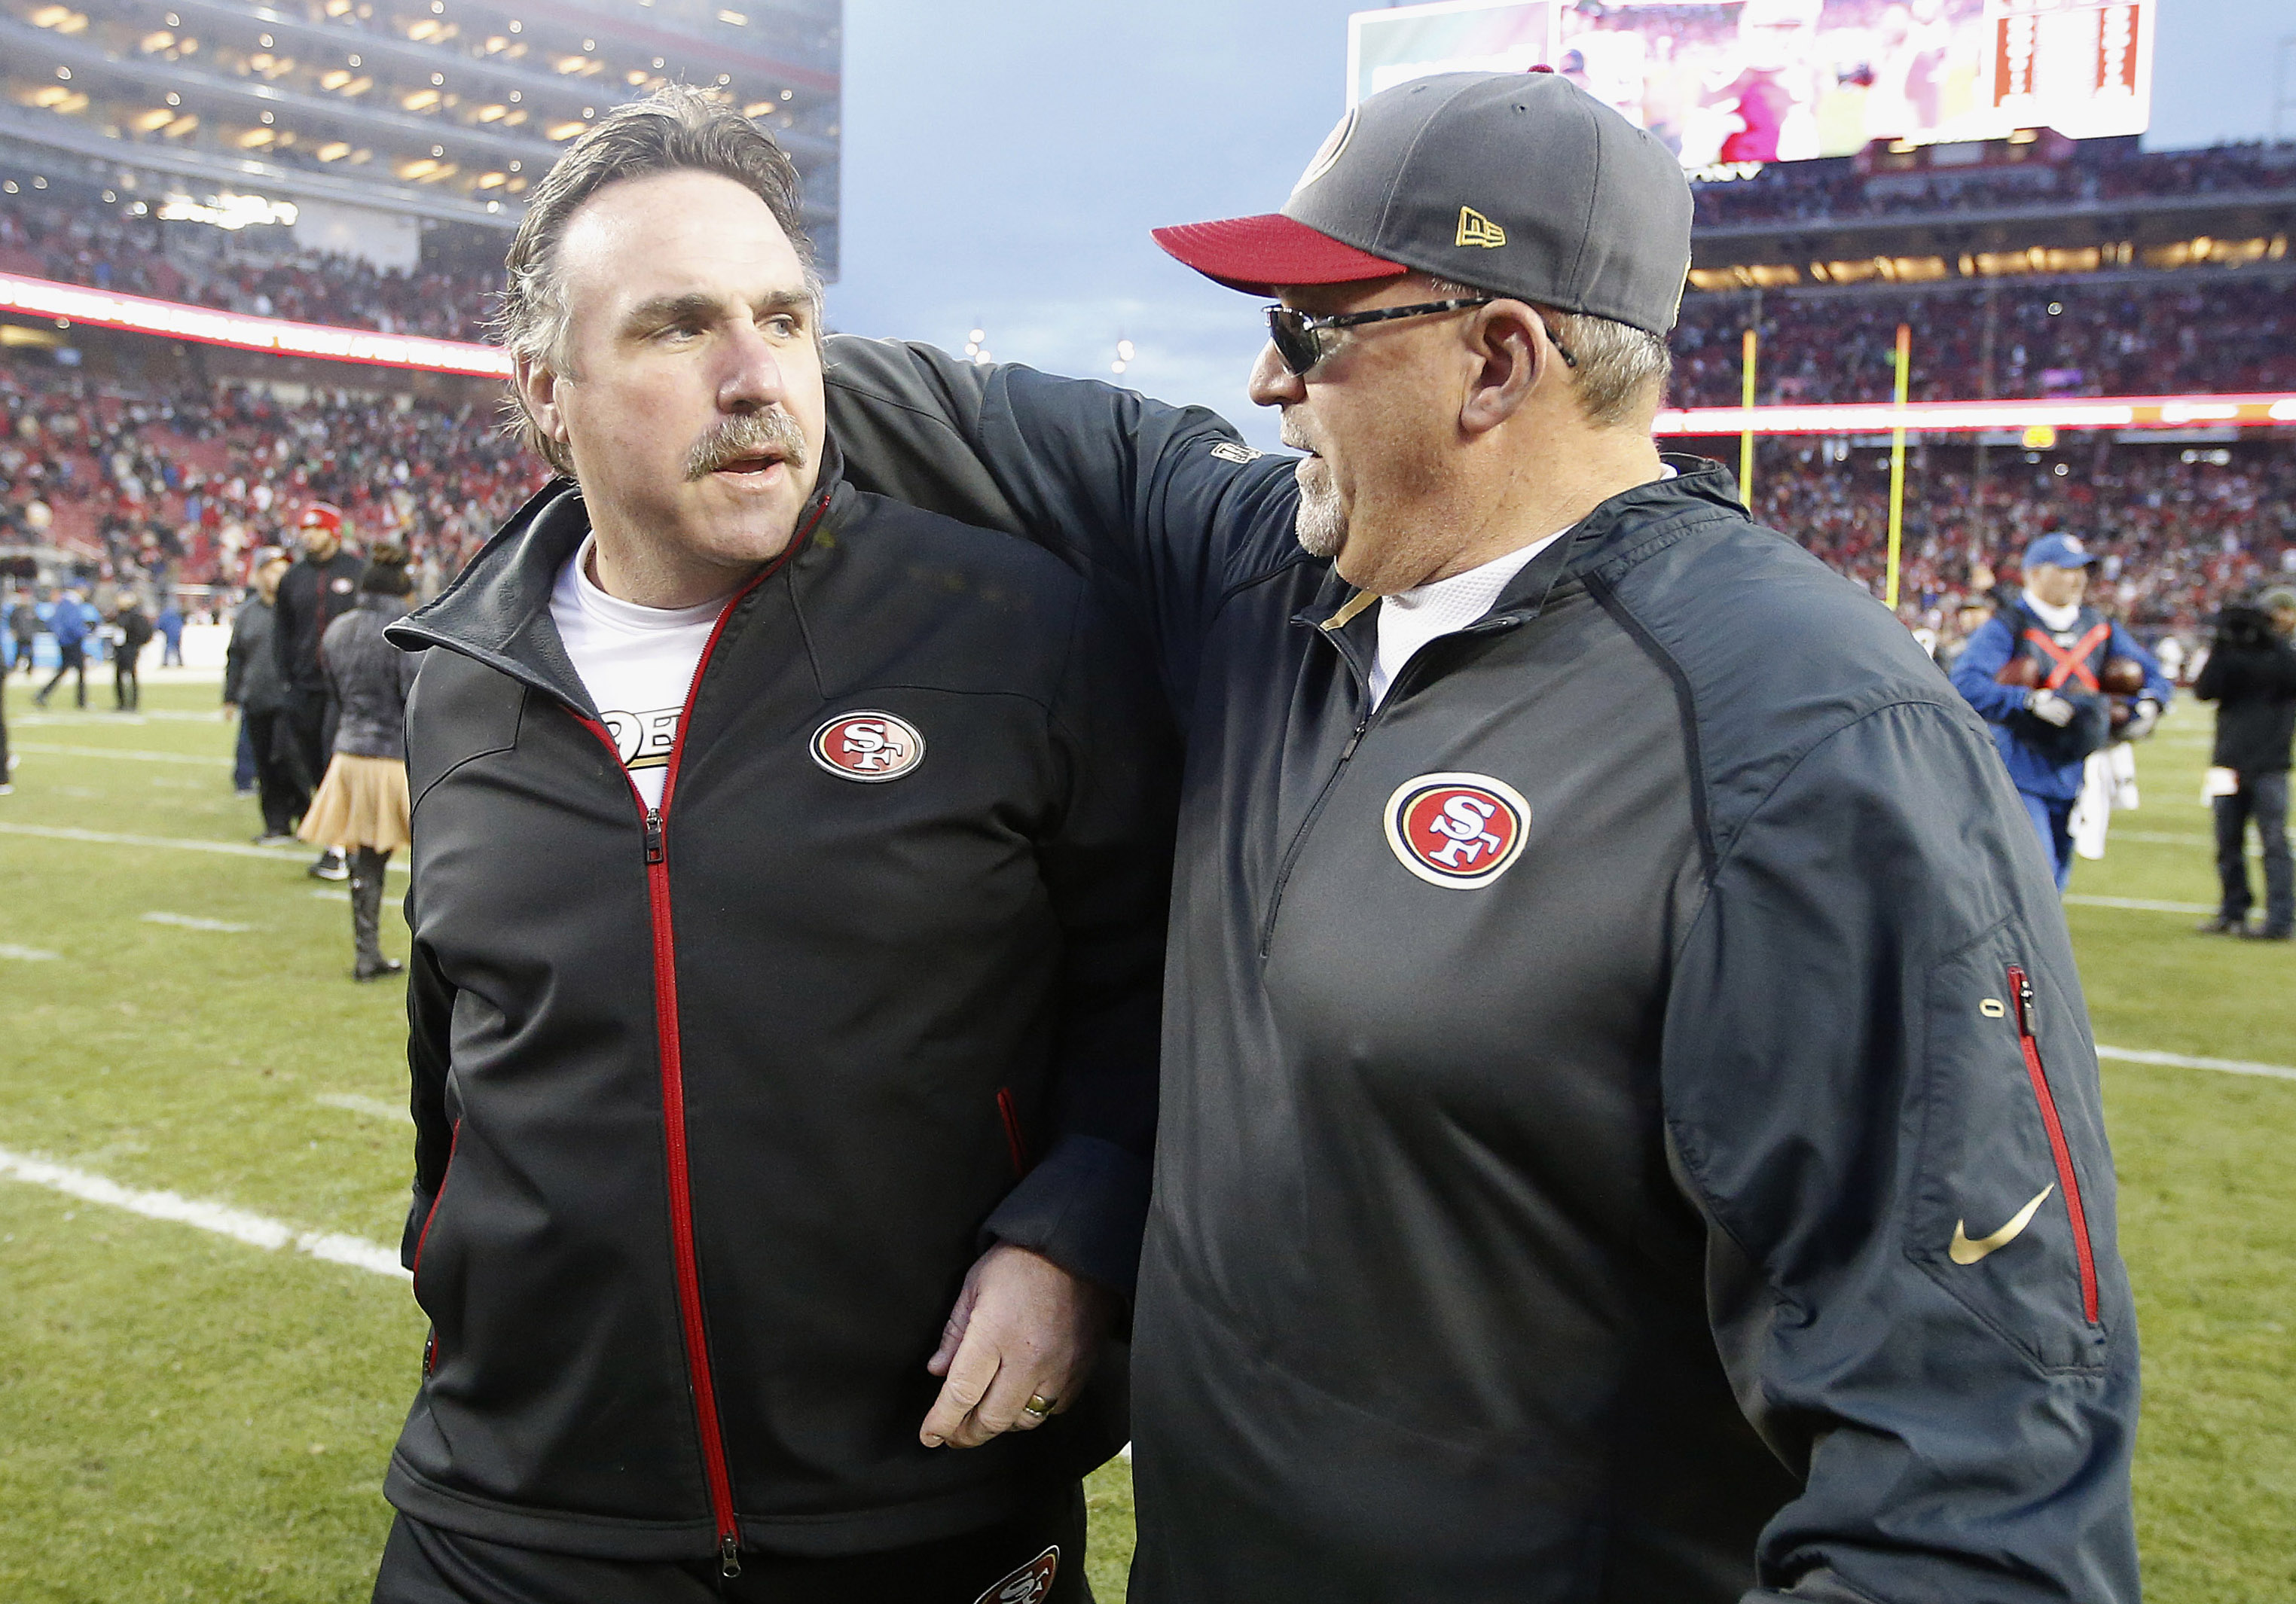 San Francisco 49ers head coach Jim Tomsula, left, walks off the field with tight ends coach Tony Sparano after an NFL football game against the St. Louis Rams in Santa Clara, Calif., Sunday, Jan. 3, 2016. The 49ers won 19-16 in overtime. (AP Photo/Tony Av